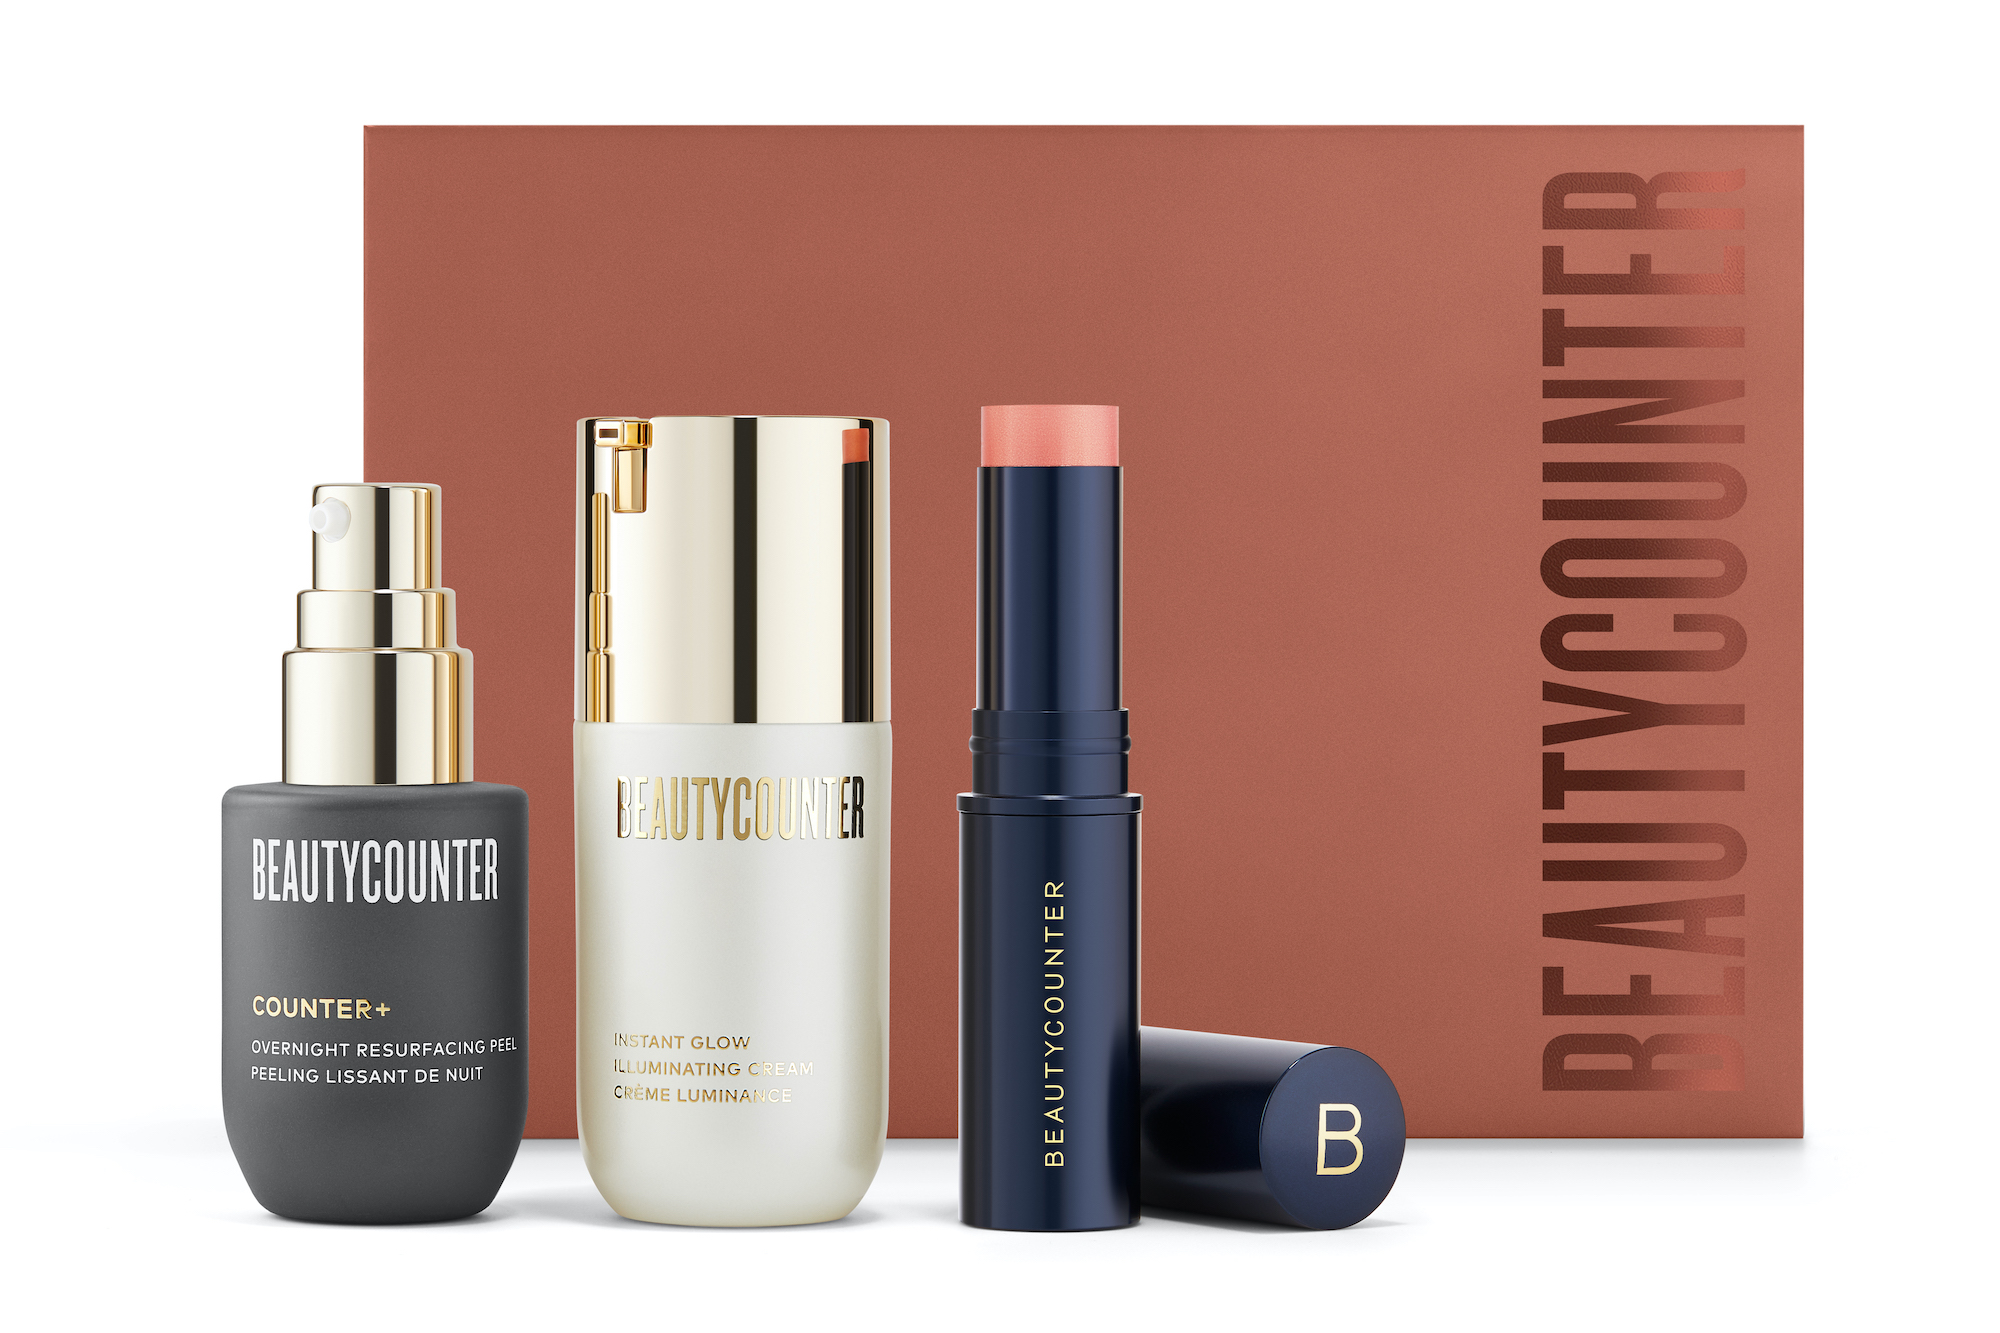 Beautycounter Glow Getters Trio Box sustainable gifts